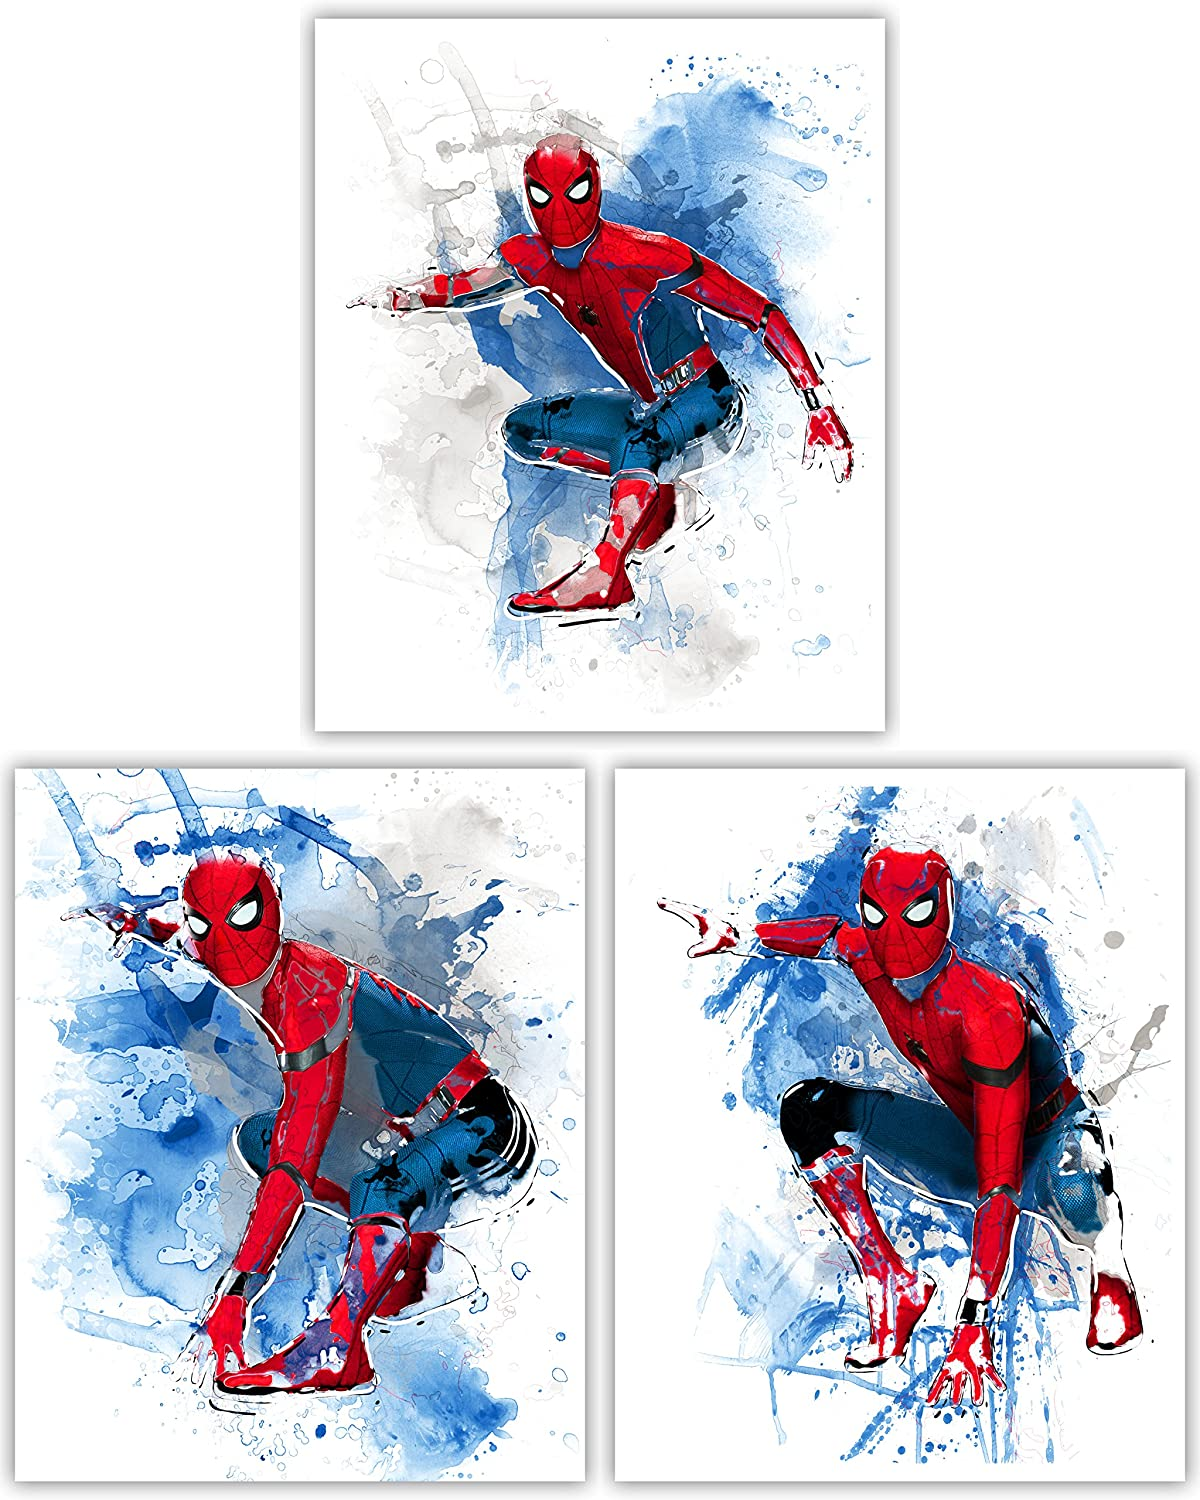 Spider-Man Homecoming Wall Decor Collection - The Spectacular Avenger in Our Ultimate Wall Art Movie Poster Series - Set of 3 8x10 Photos